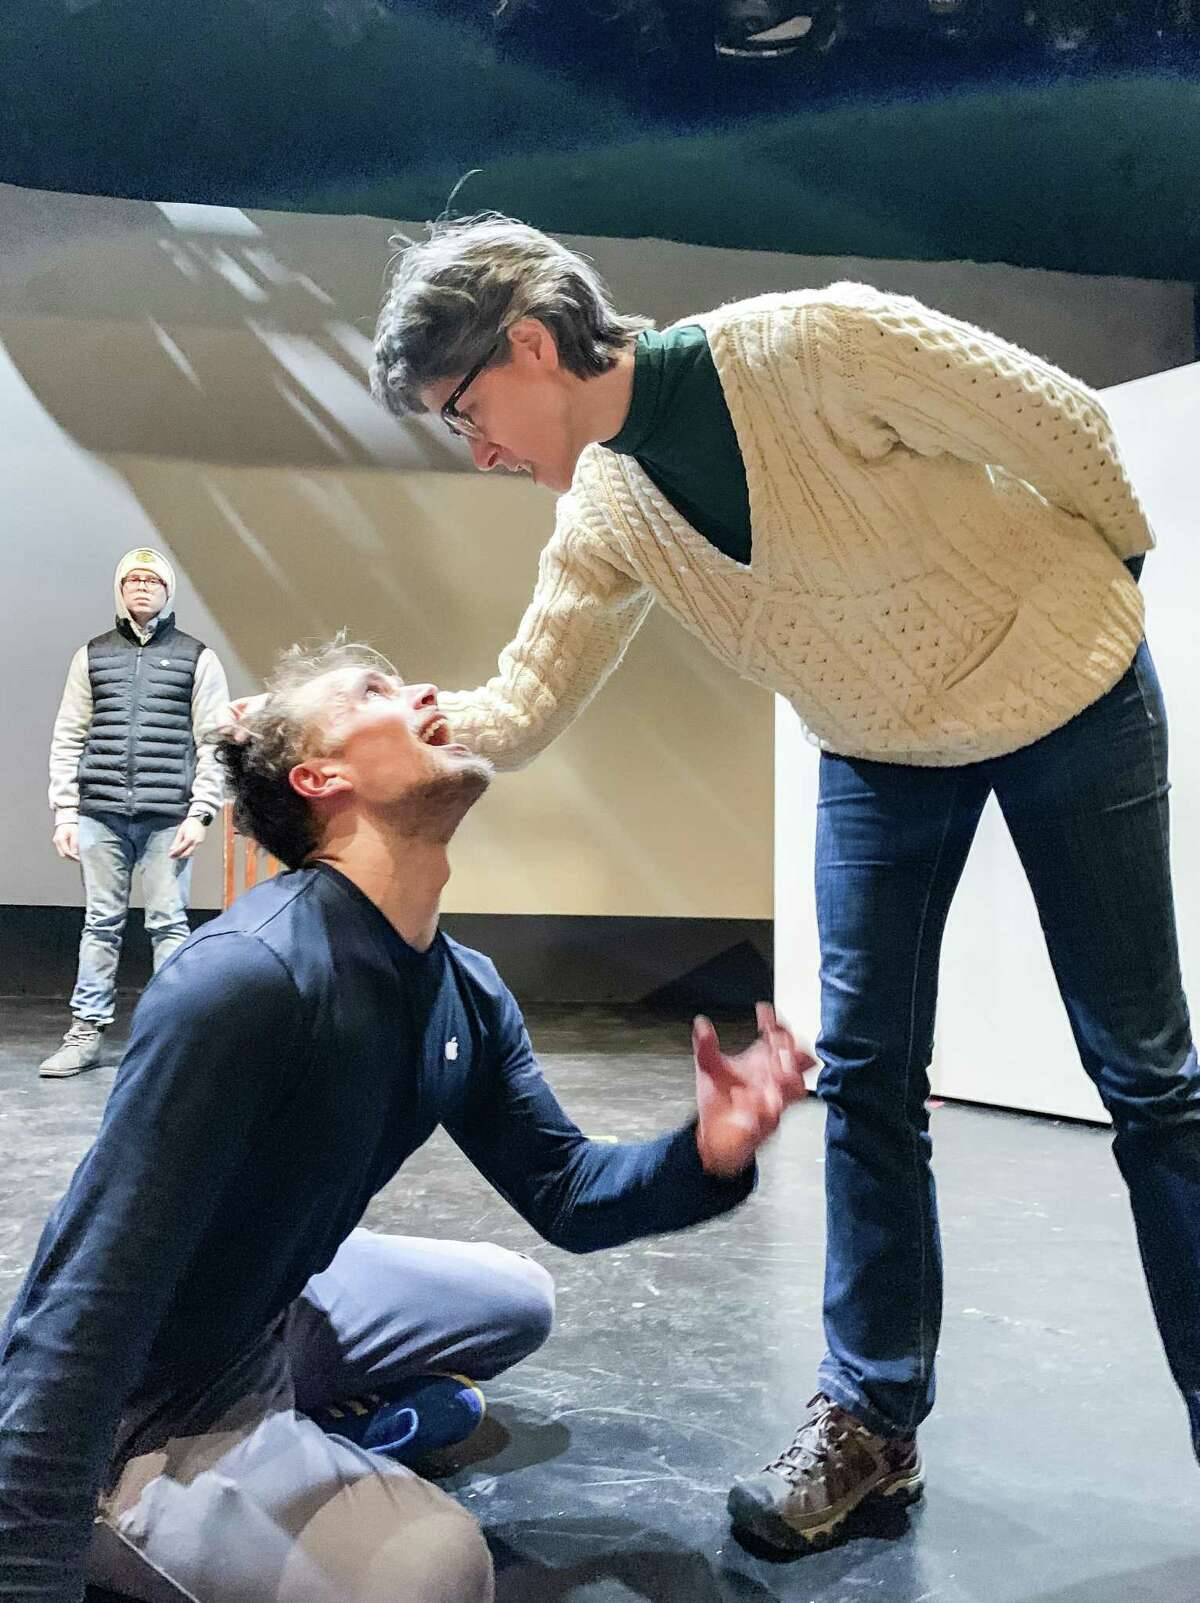 Chris Kozlowski, as Winston Smith, rehearses with Suzanne Powers, as O'Brien, for George Orwell's